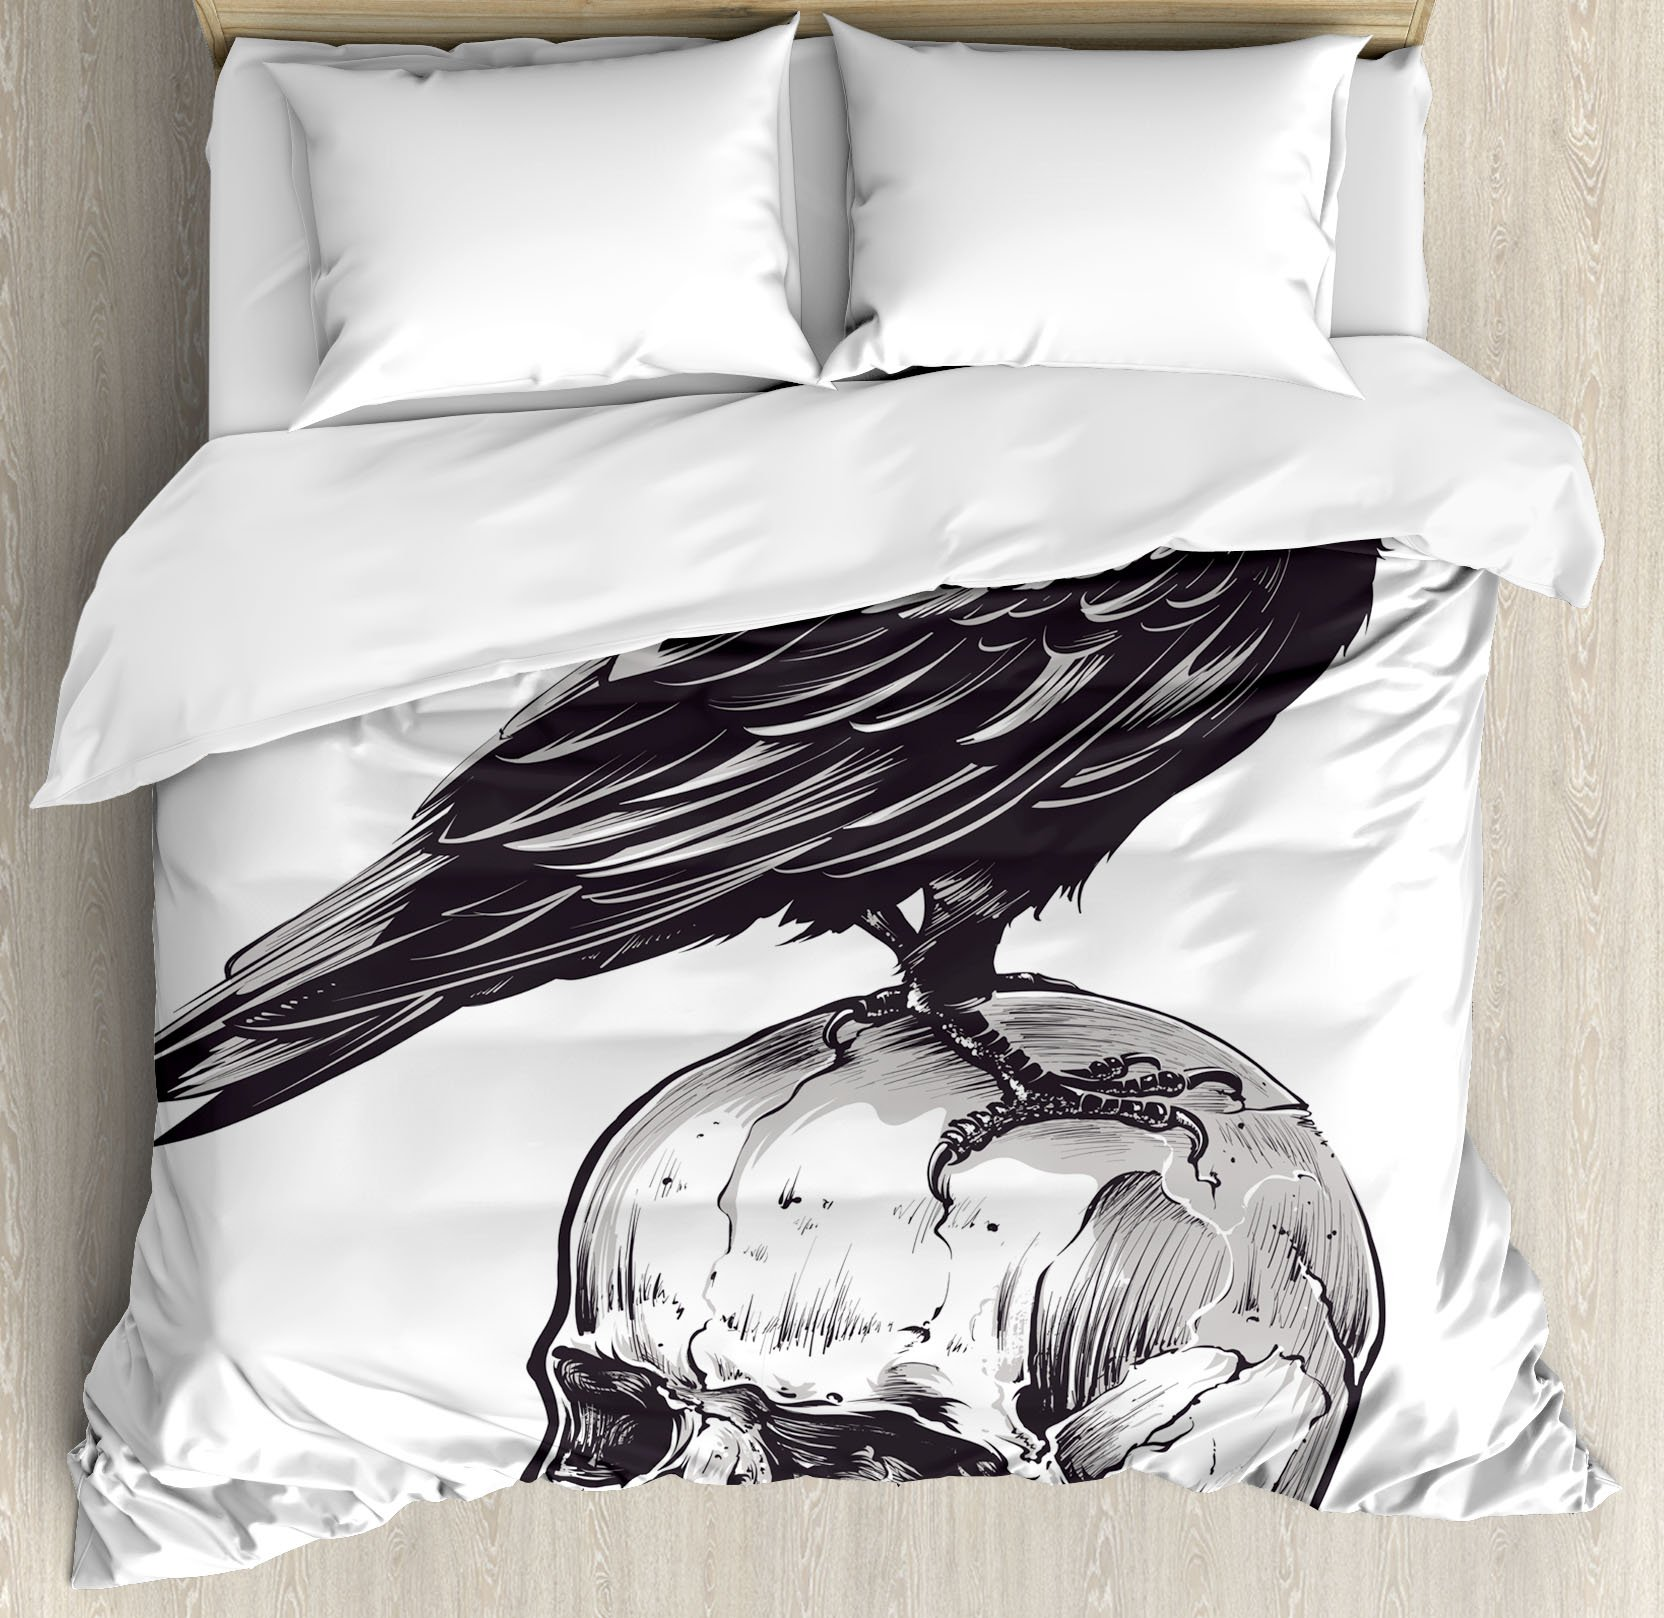 Scary Queen Size Duvet Cover Set by Ambesonne, Scary Movies Theme Crow Bird Sitting on a Human Old Skull Sketchy Image, Decorative 3 Piece Bedding Set with 2 Pillow Shams, Charcoal Grey White